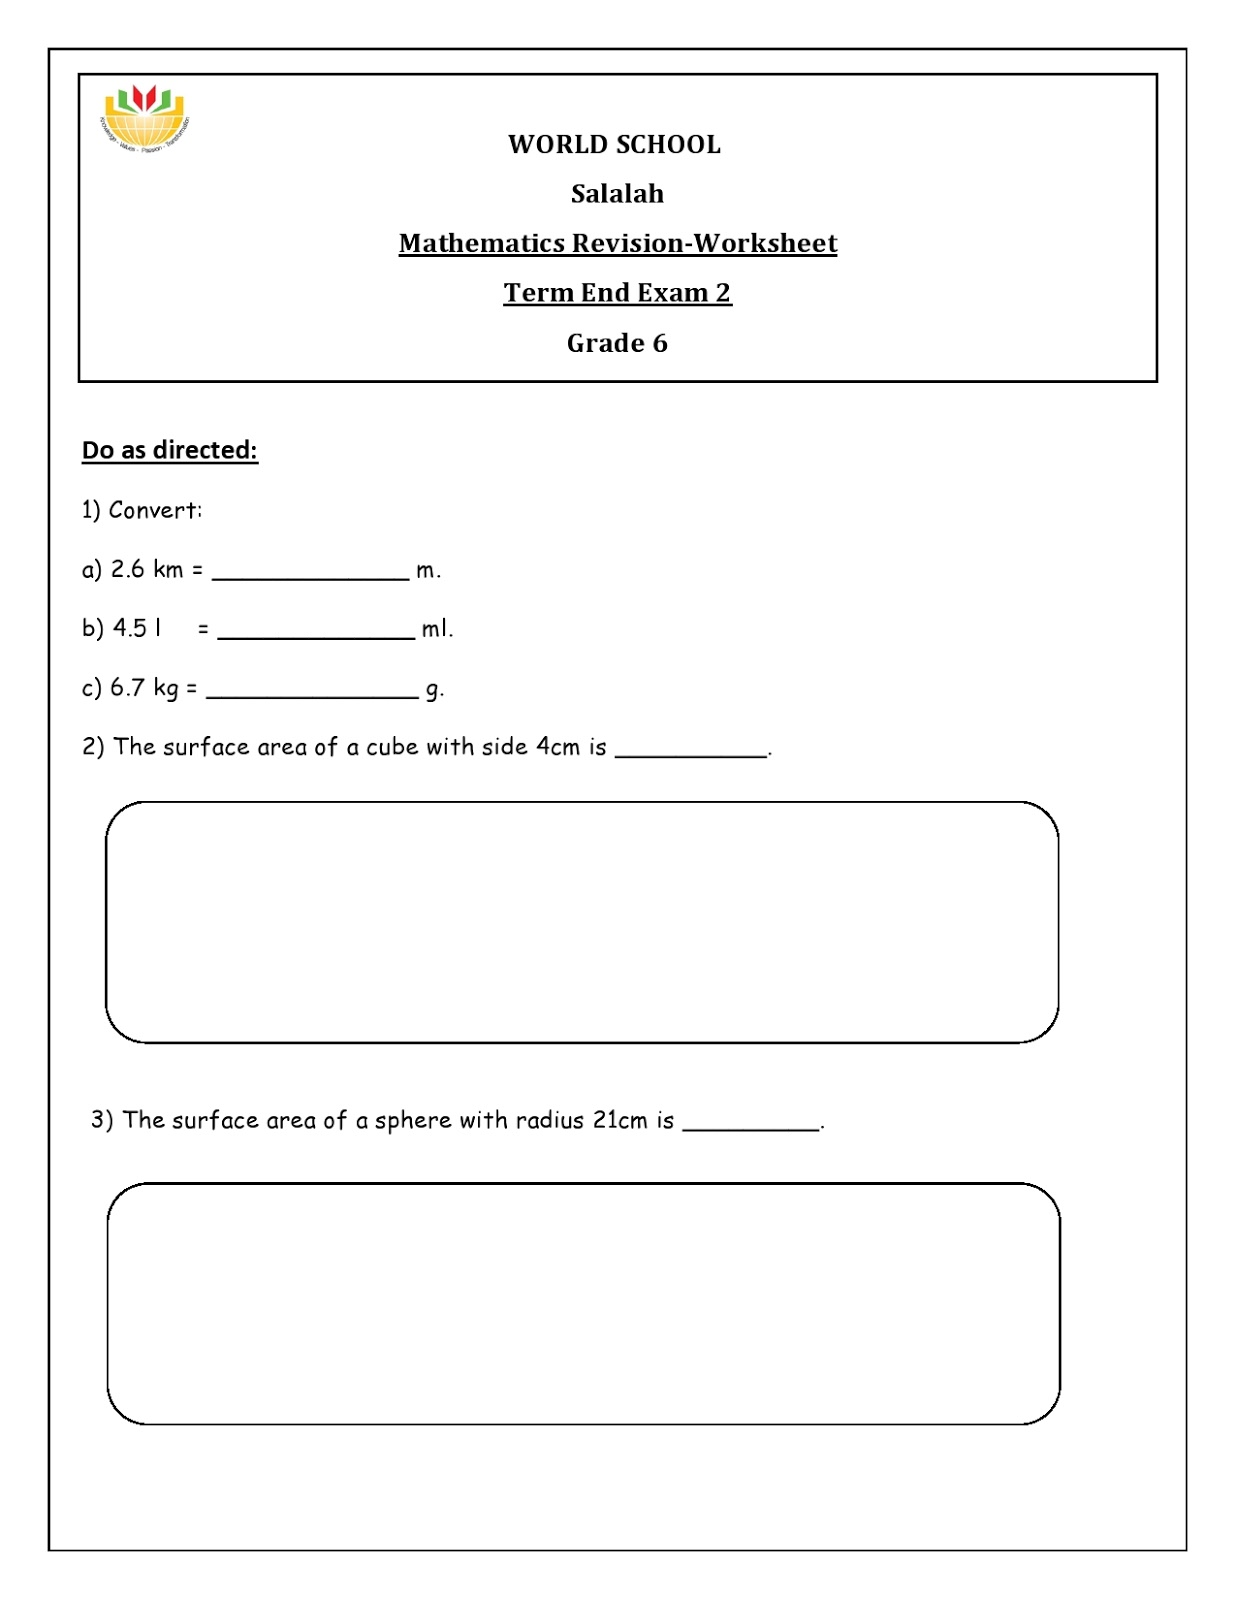 hight resolution of WORLD SCHOOL OMAN: Revision Worksheets for Grade 6 as on 09-05-2019